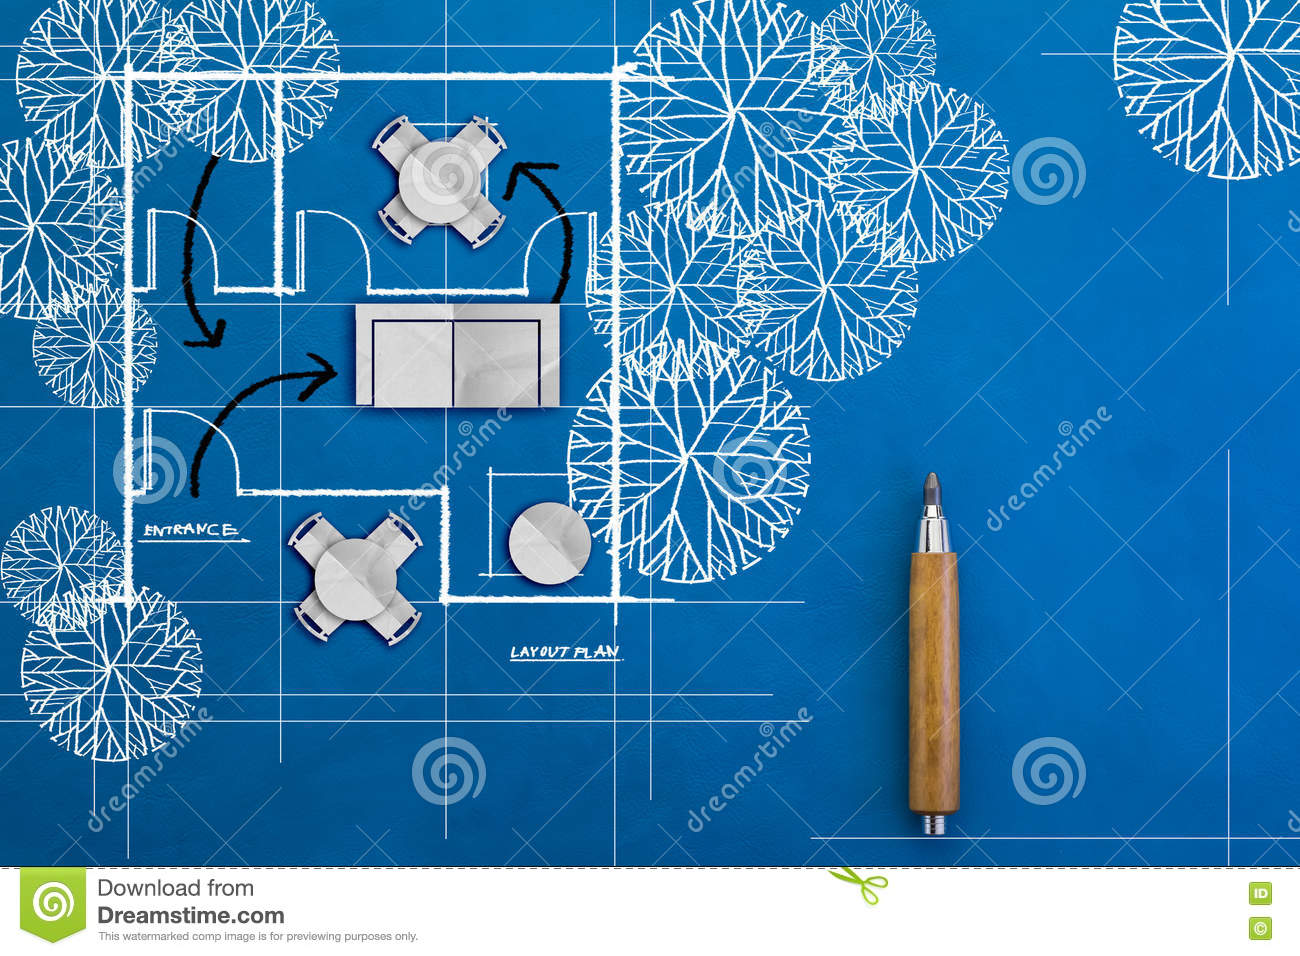 Architecture blueprints Modern Home Doodle Of Architecture Blueprints And House Plans Visualizing Architecture Doodle Of Architecture Blueprints And House Plans Stock Image